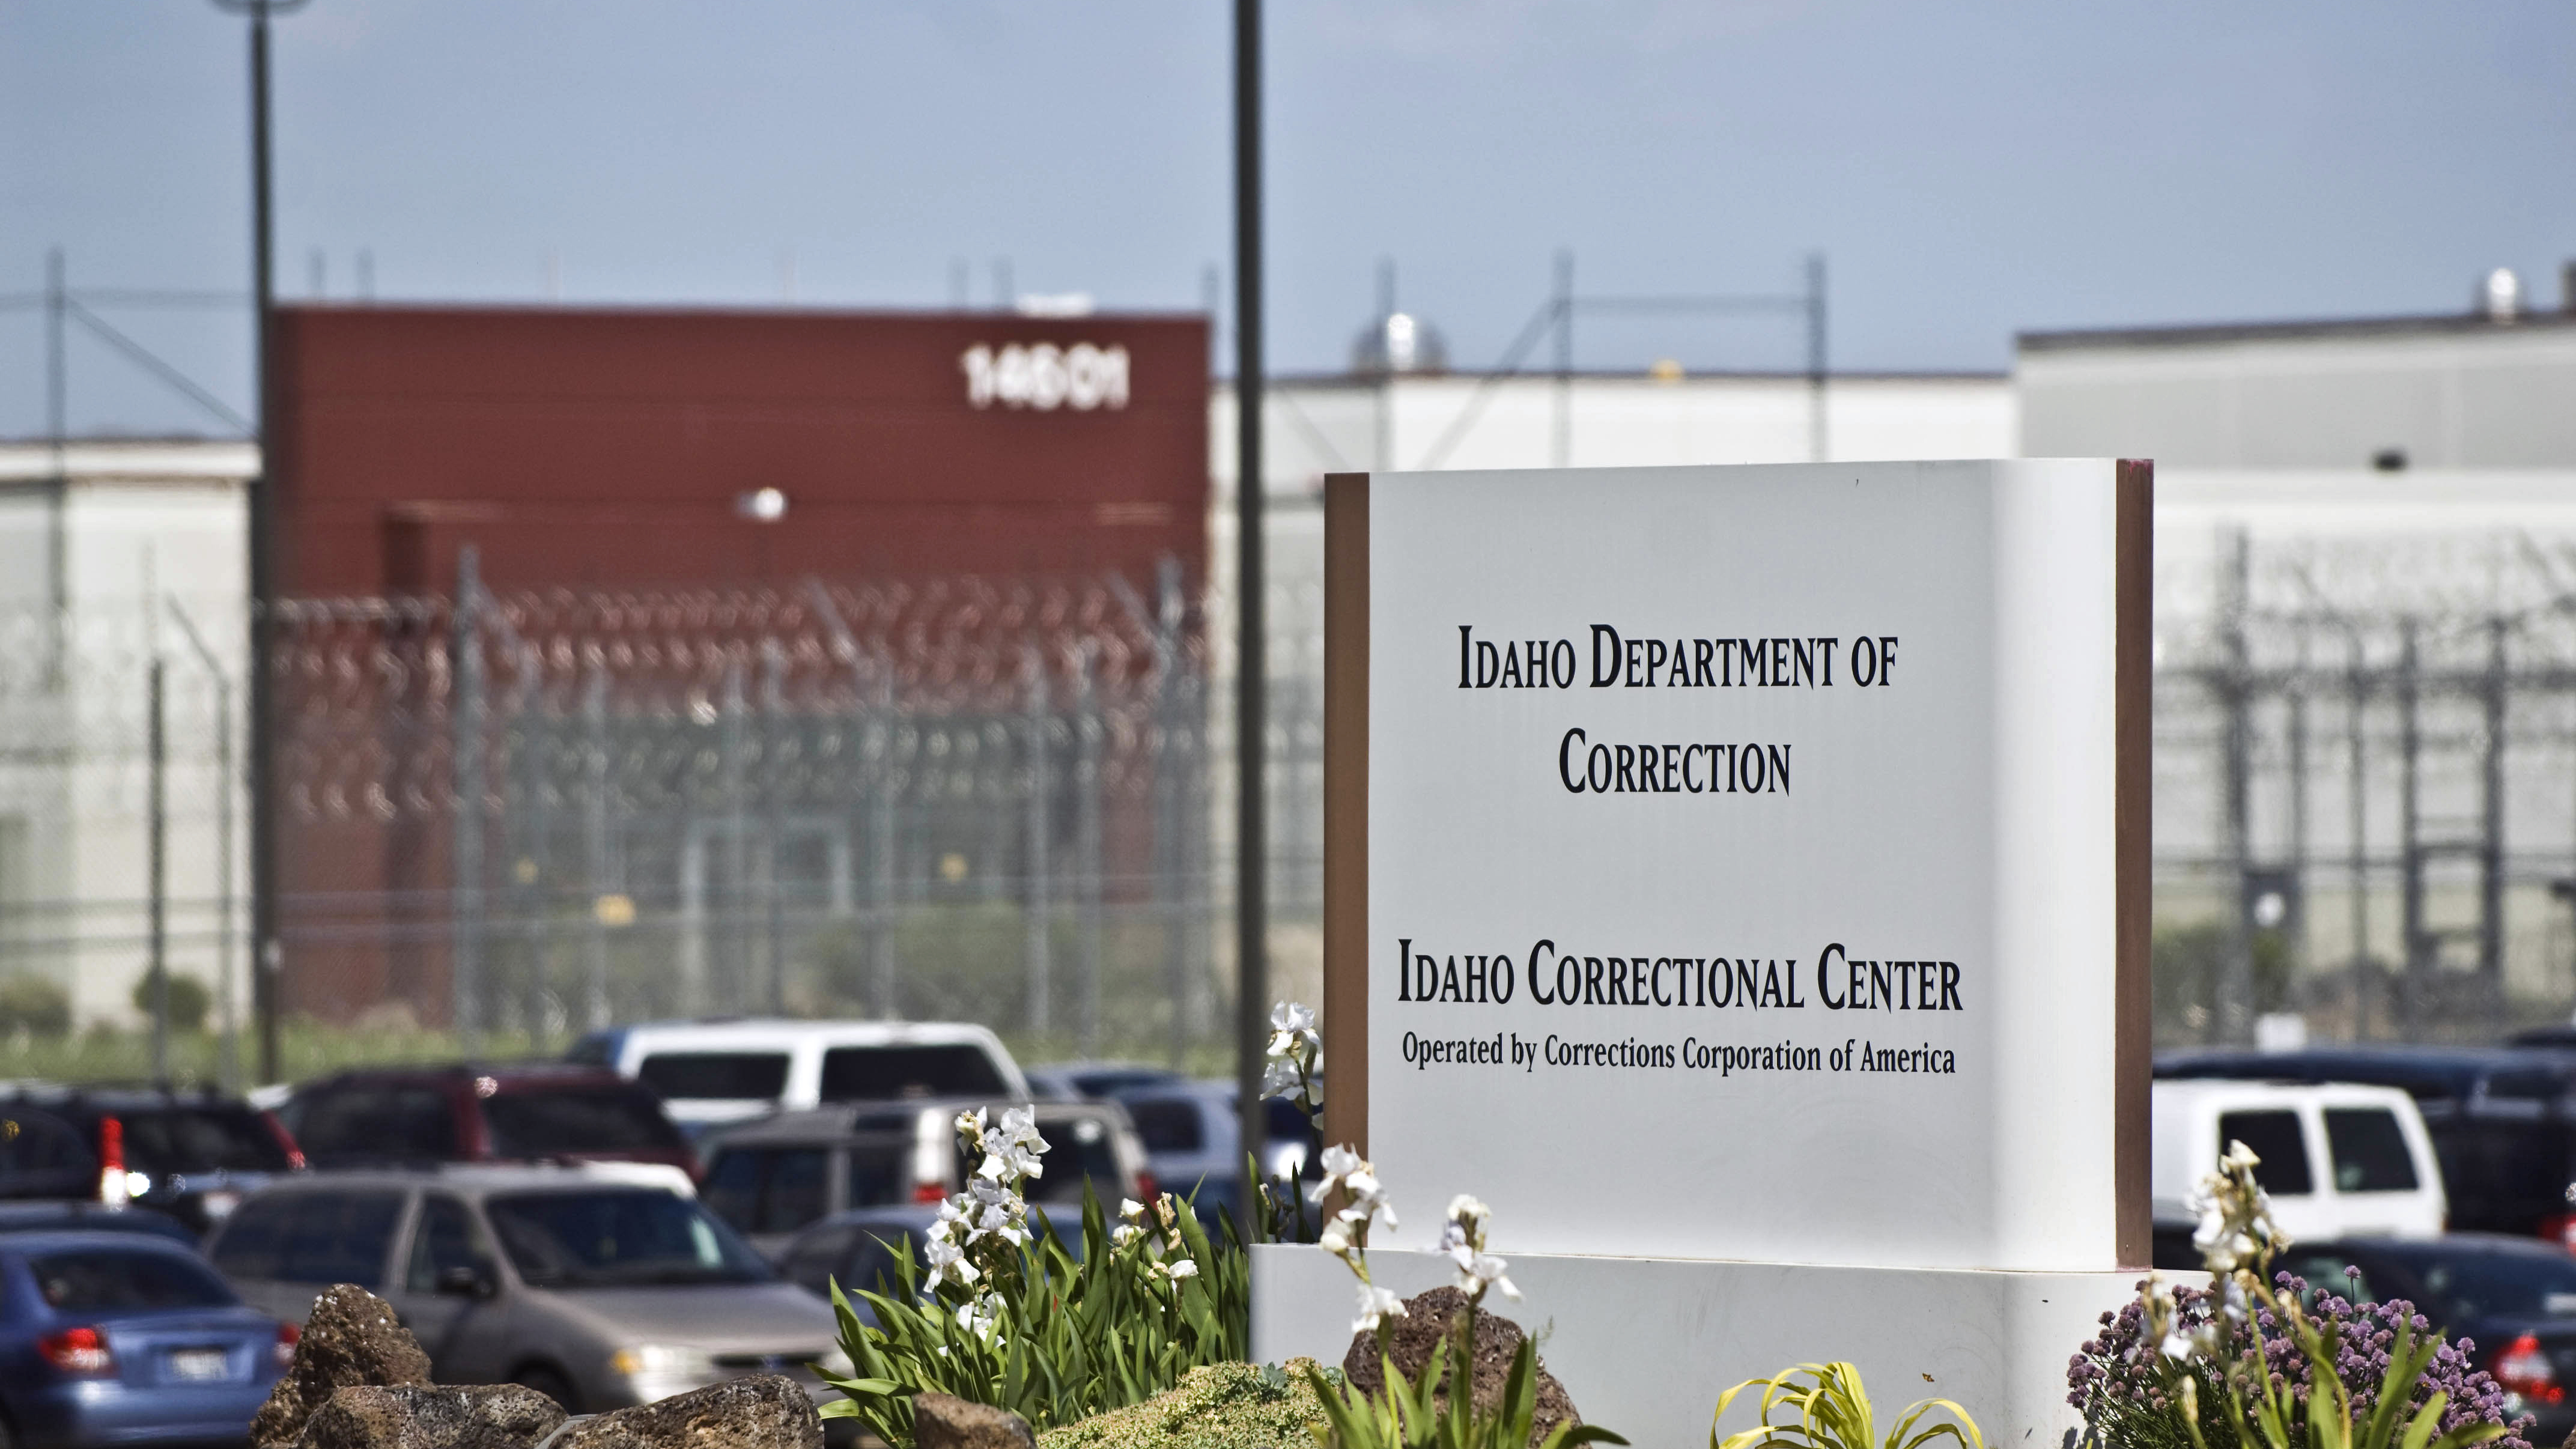 The Idaho Correctional Center south of Boise, Idaho, is a contract facility operated by Corrections Corporation of America. The Justice Department says it's phasing out its relationships with private prisons after a recent audit found they have more safety and security problems than ones run by the government. (Photo by Charlie Litchfield/AP)